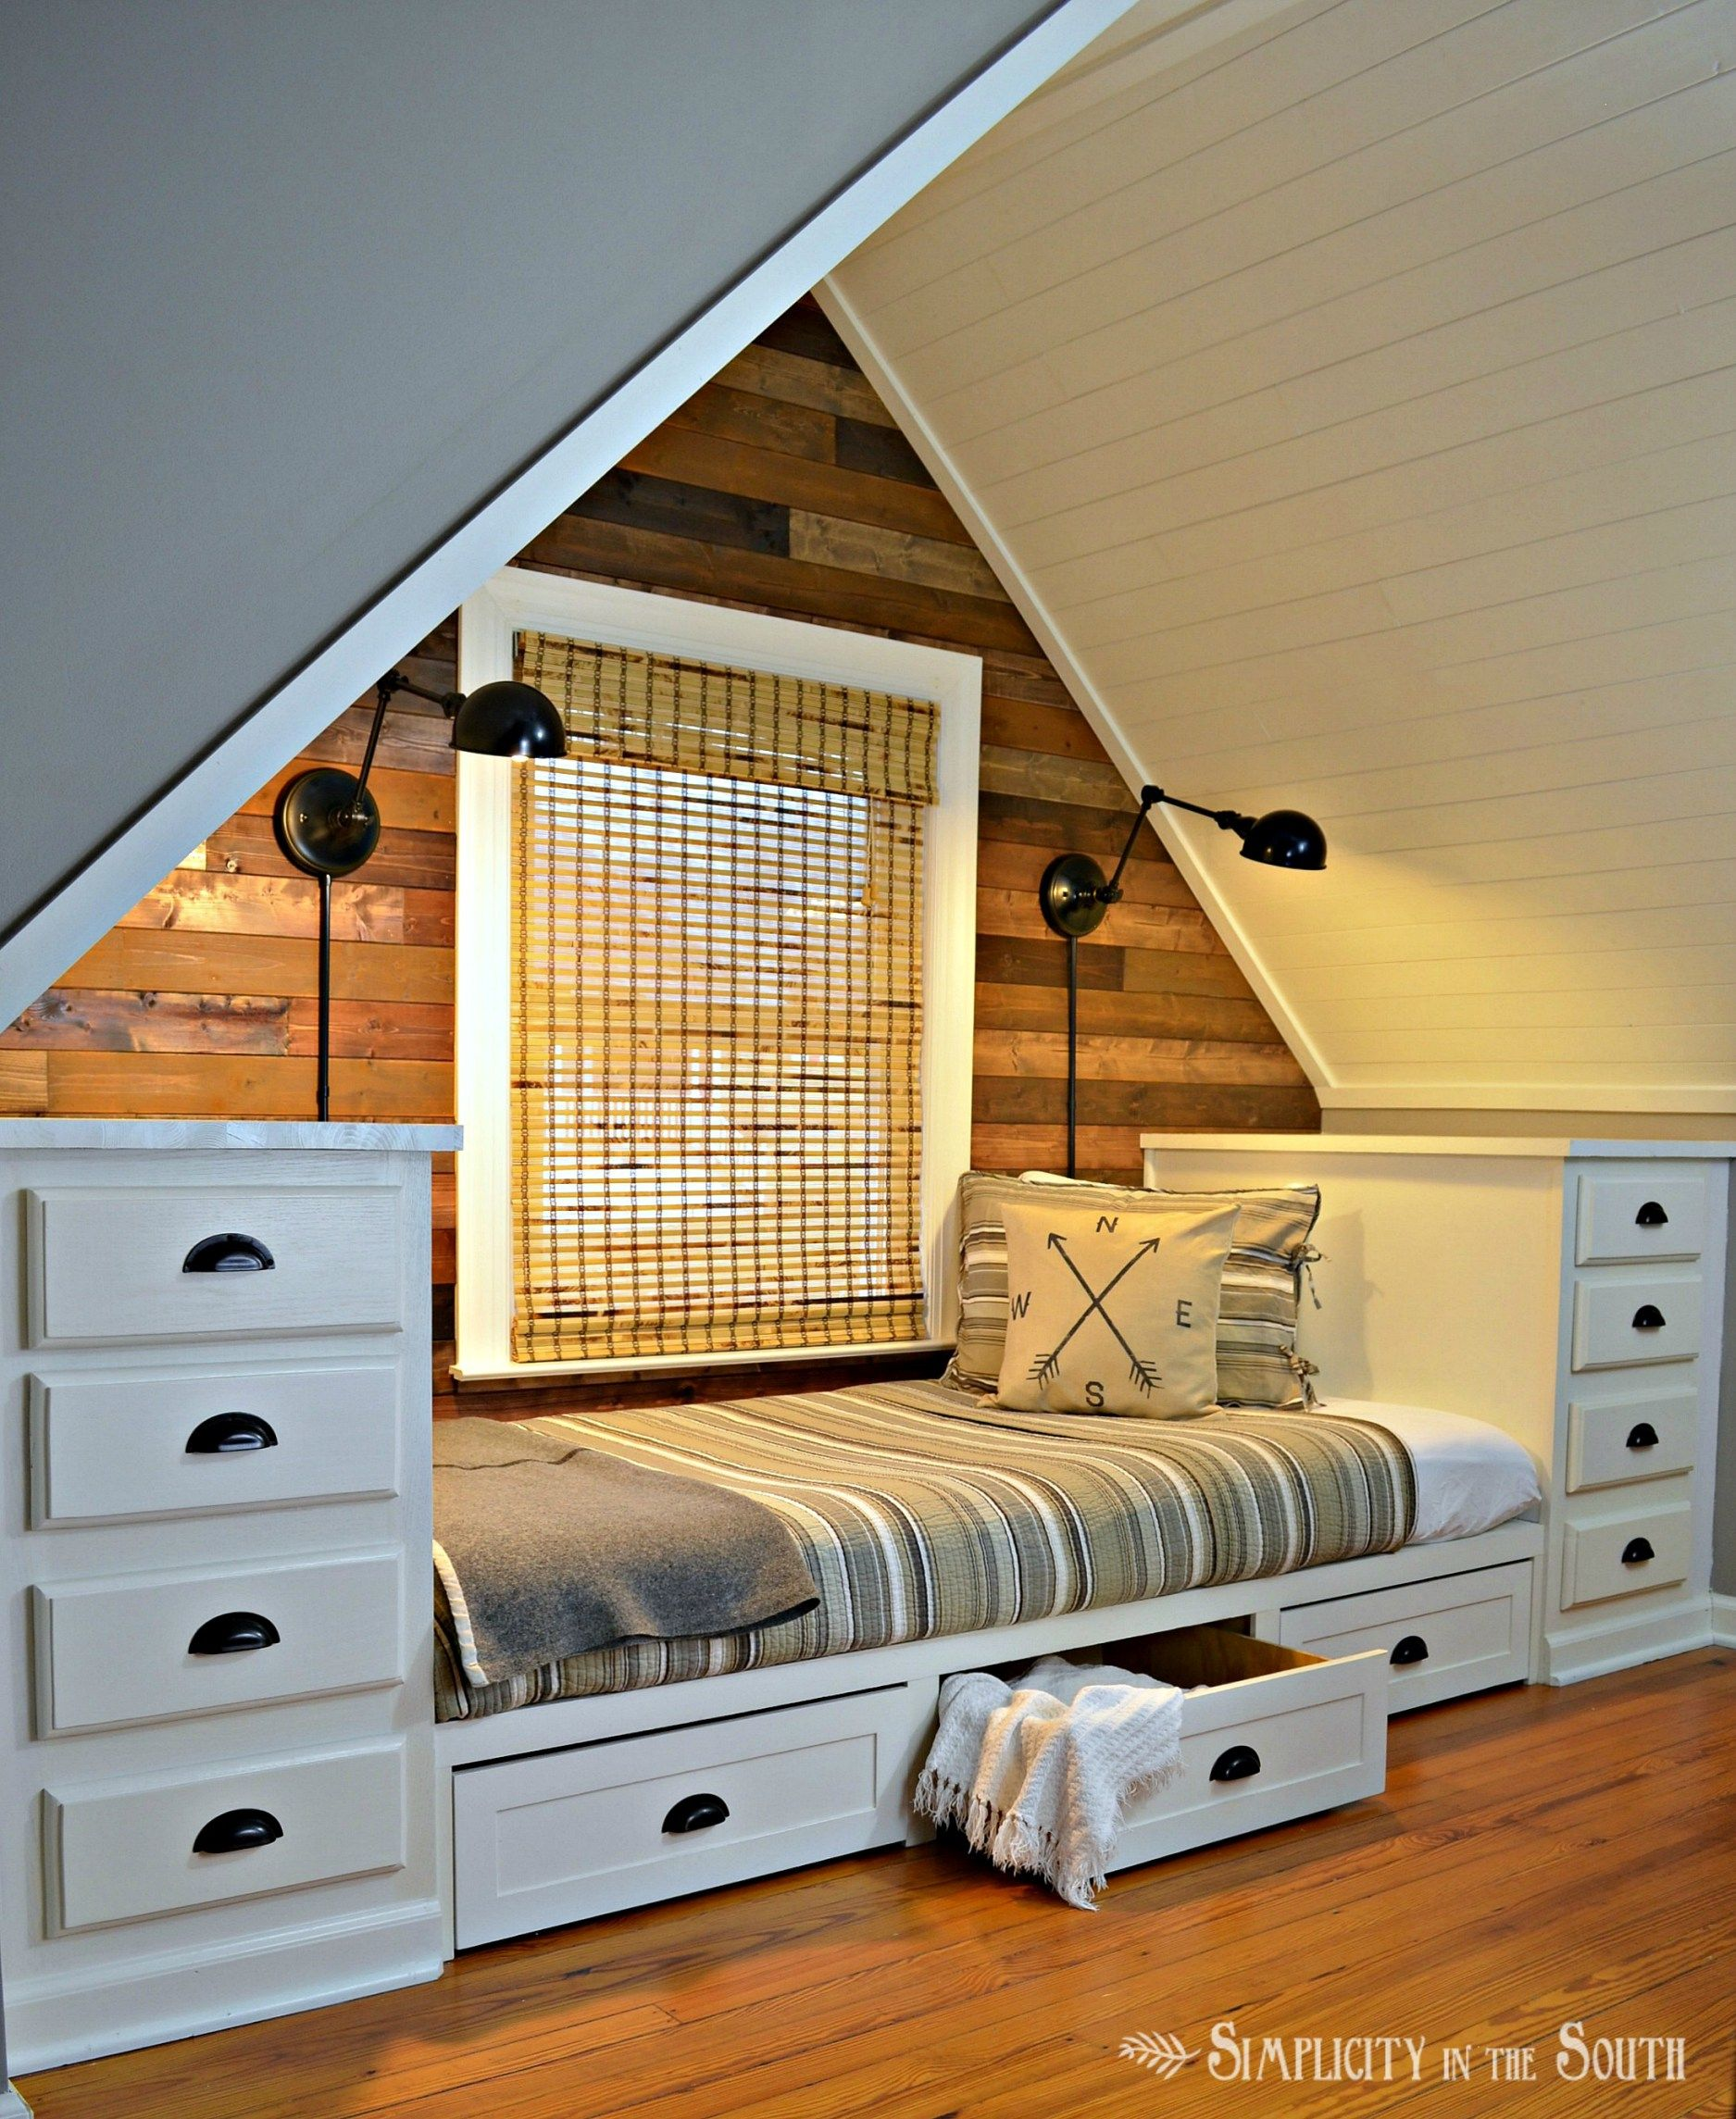 How To Make A Built In Bed Using Kitchen Cabinets Built In Bed Furniture Home